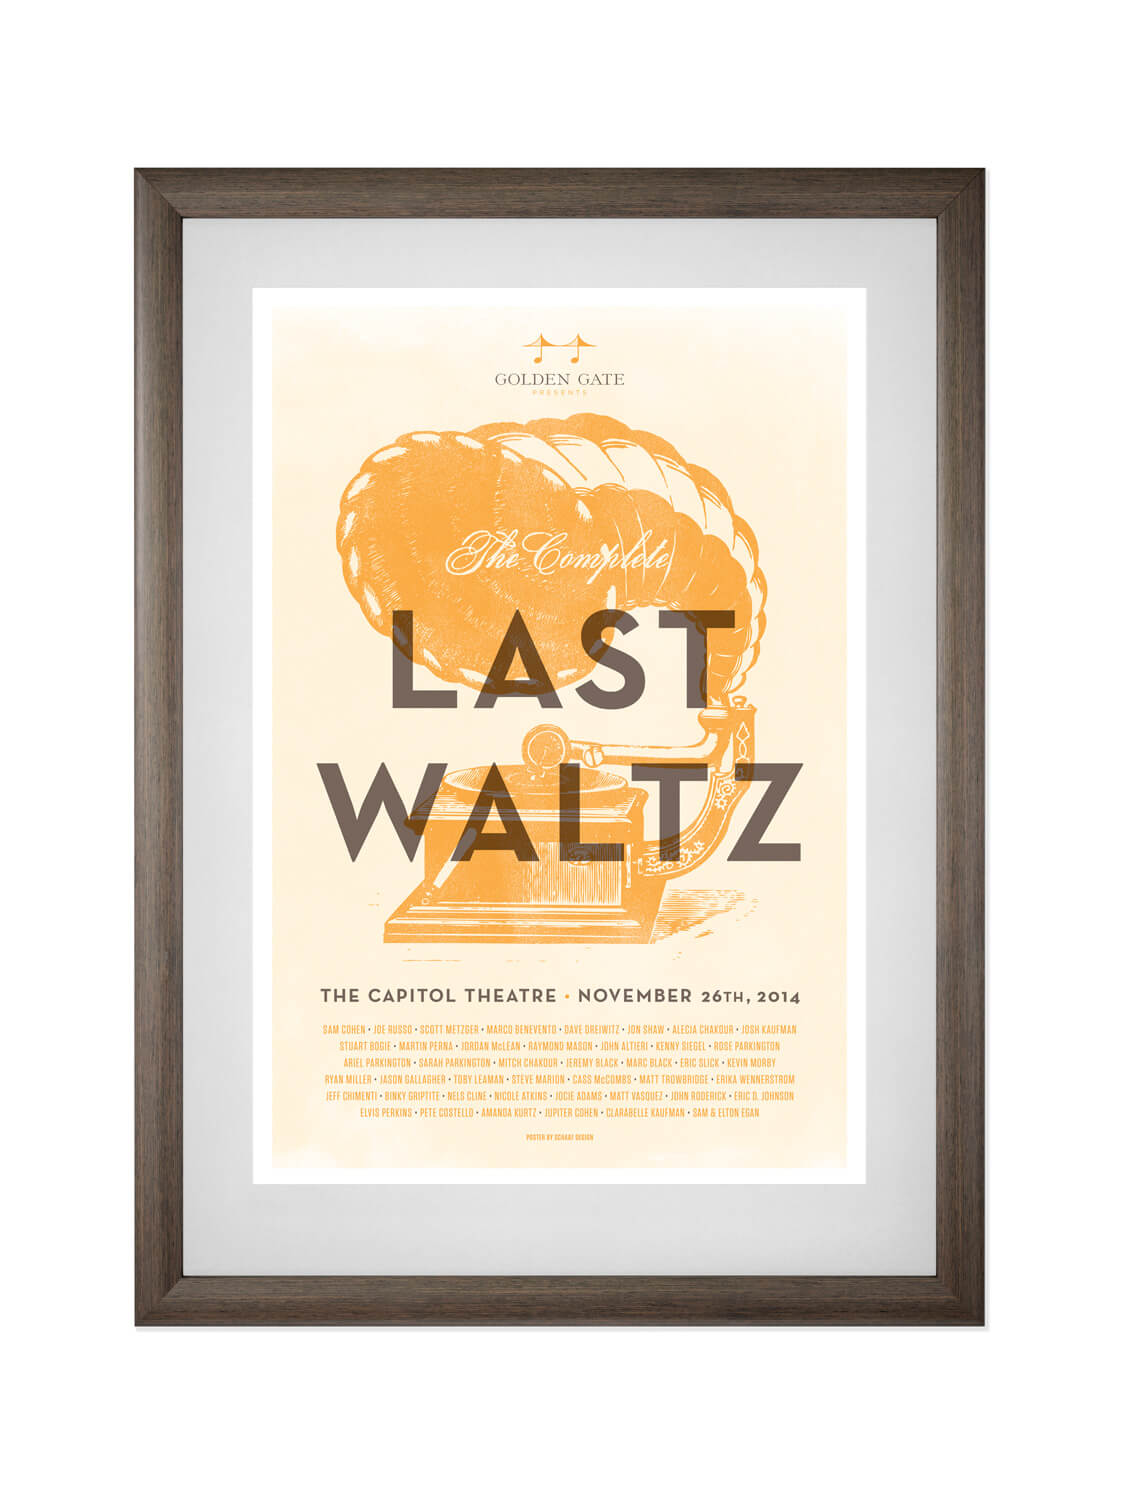 THE COMPLETE LAST WALTZ • THE CAPITOL THEATER, NY • 11/24/2012  Poster for The Complete Last Waltz, a song-for-song recreation of The Band's historic final concert.